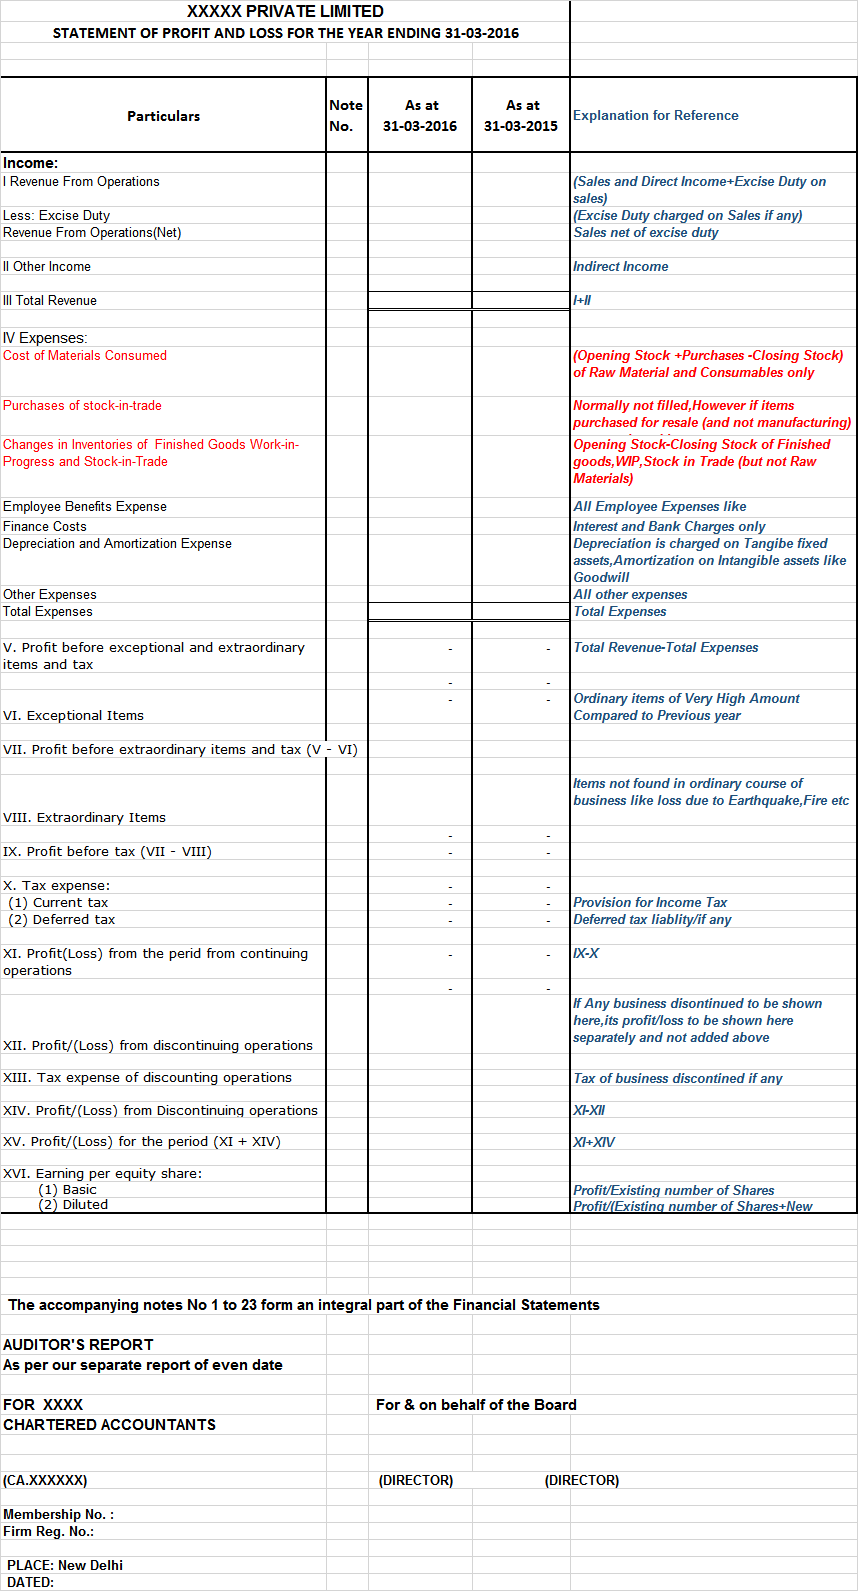 Profit and Loss as per Schedule III for Manufacturing Companies (Factories) - Making Revised Schedule III Balance Sheet